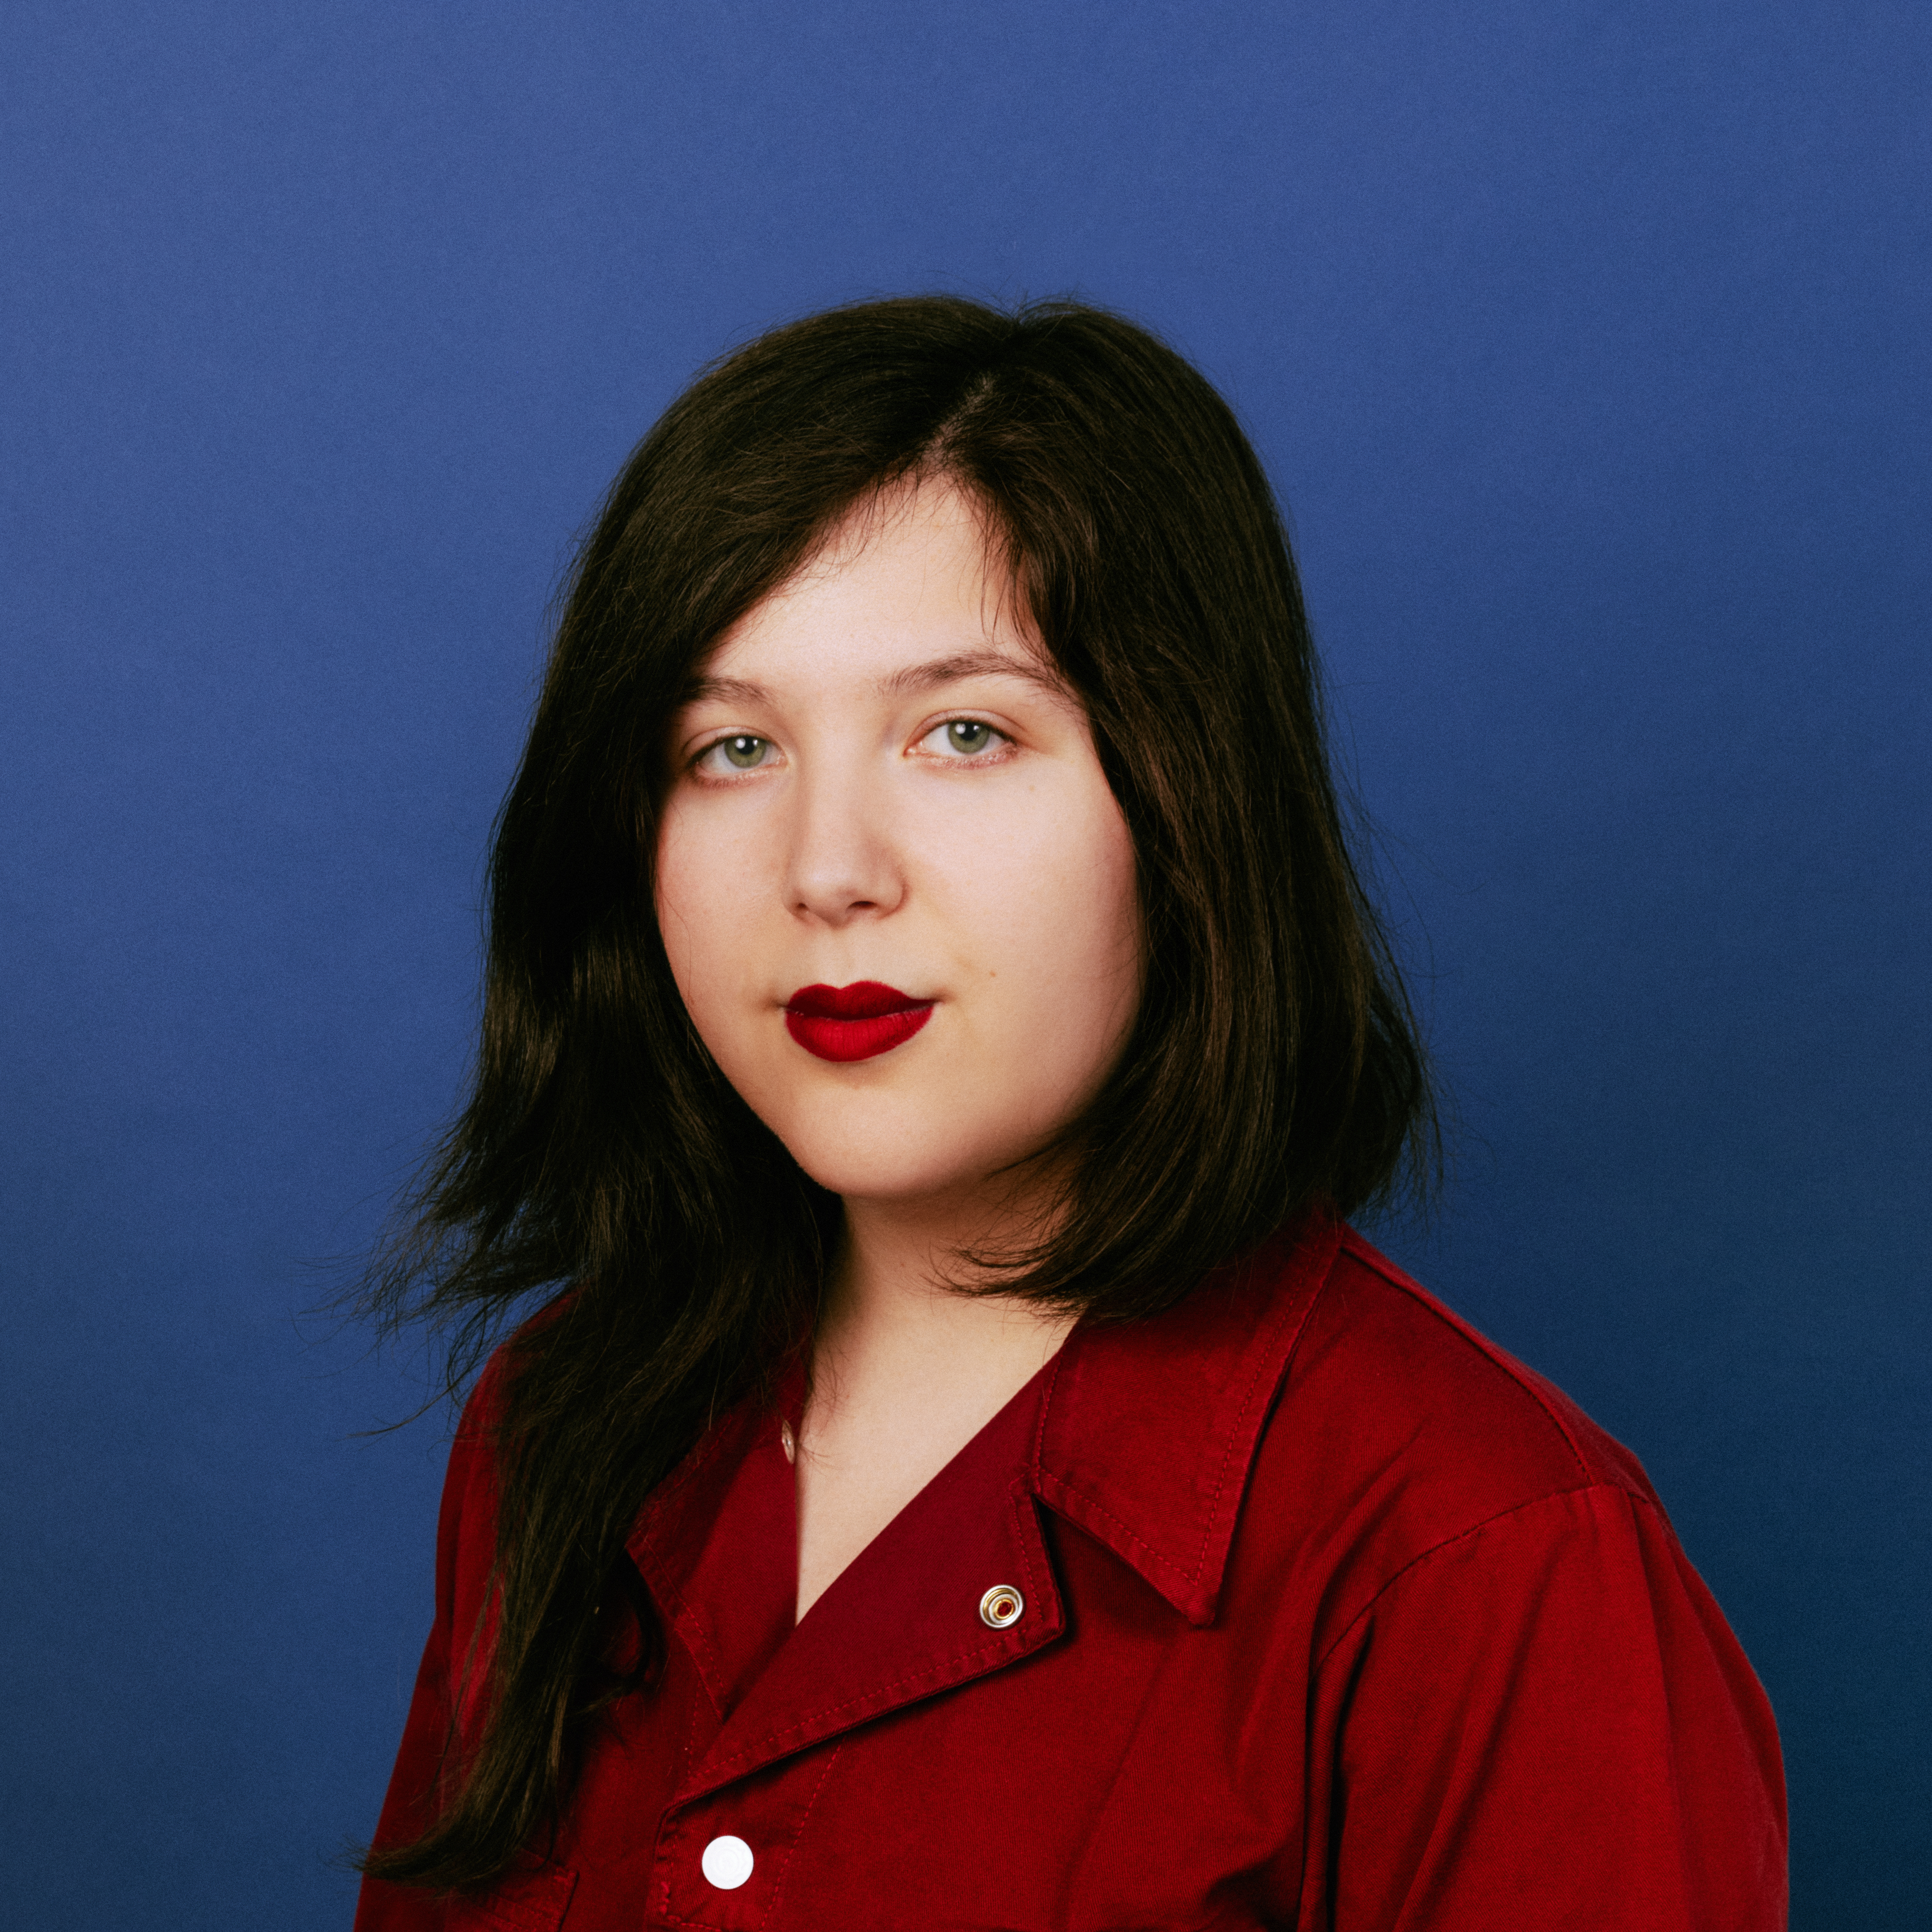 """Lucy Dacus works out frustrations with America on new track, """"Forever Half Mast"""""""